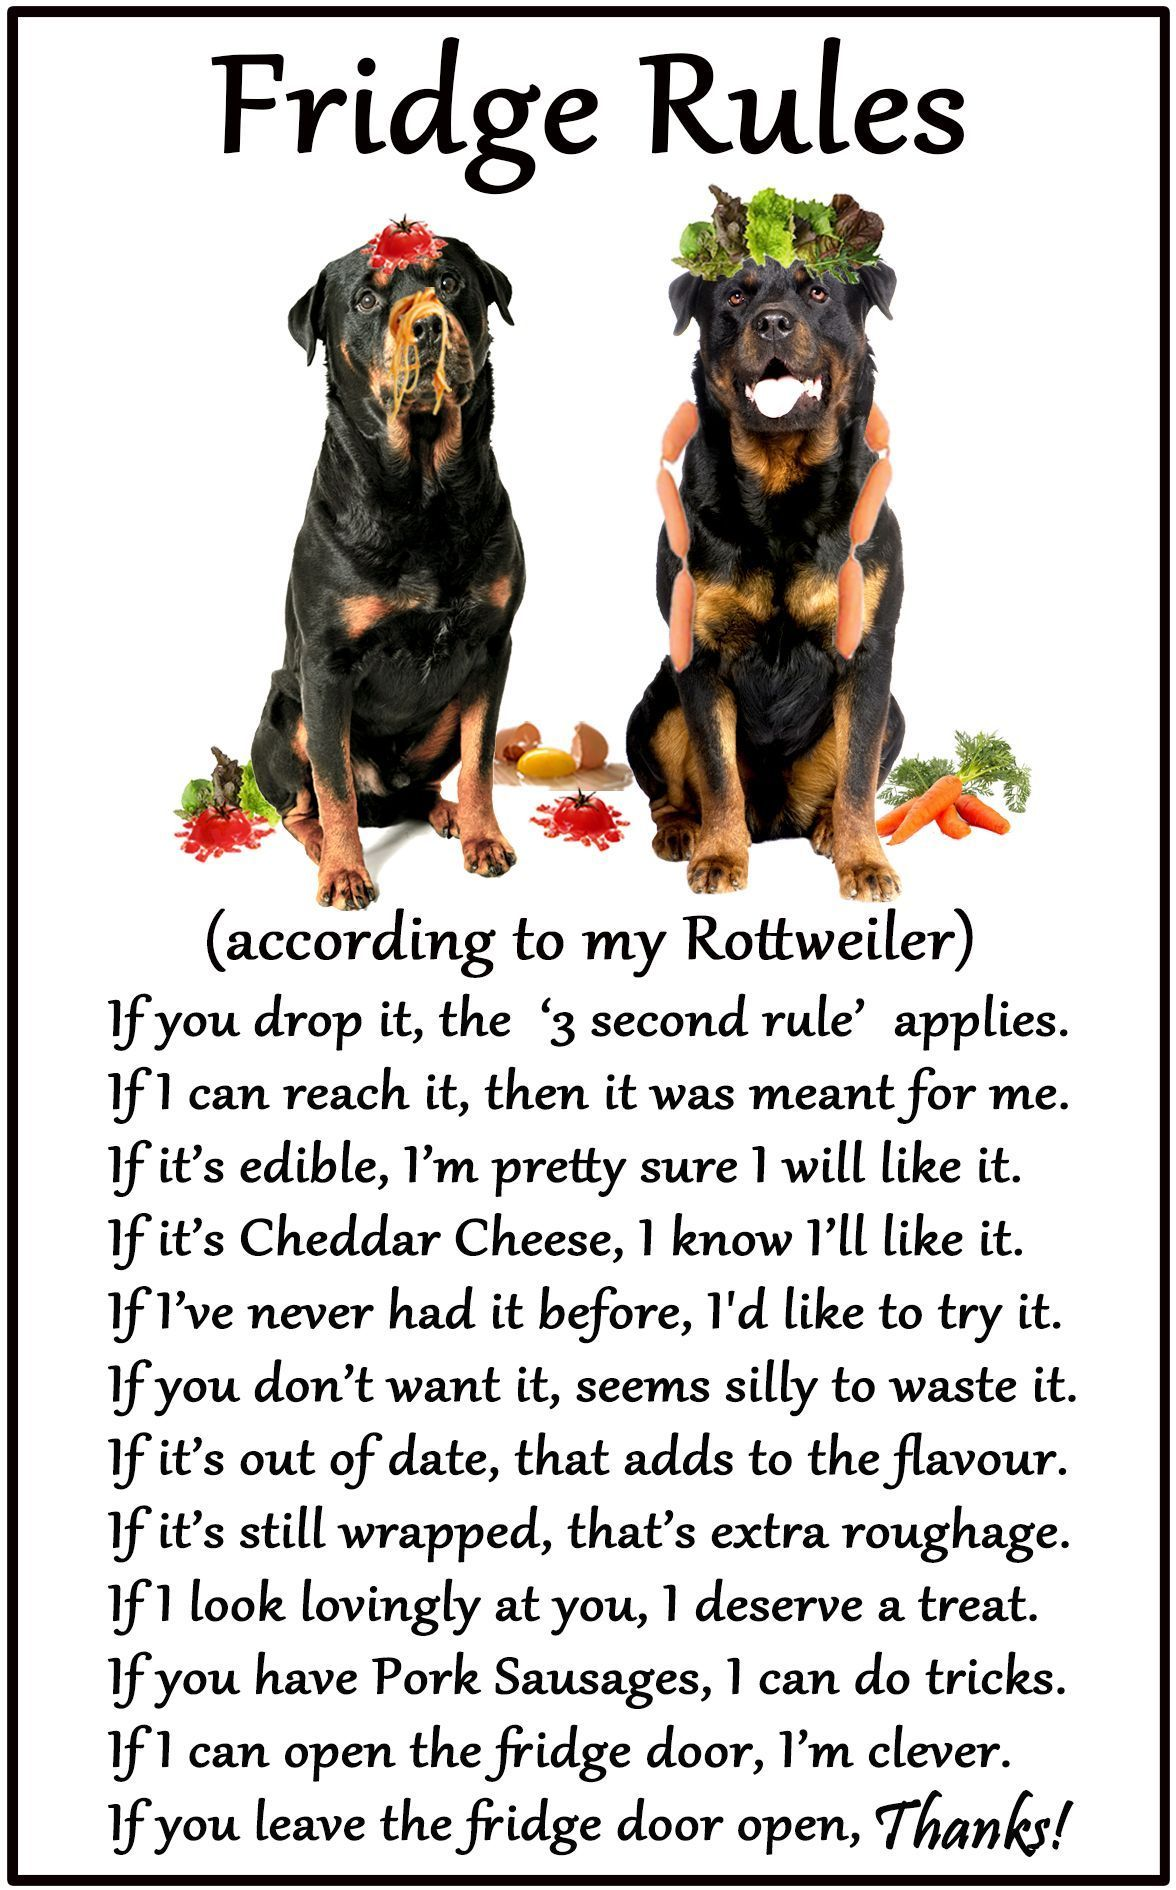 Rottweiler Humorous Magnetic Dog Fridge Rules Size 6 X 4